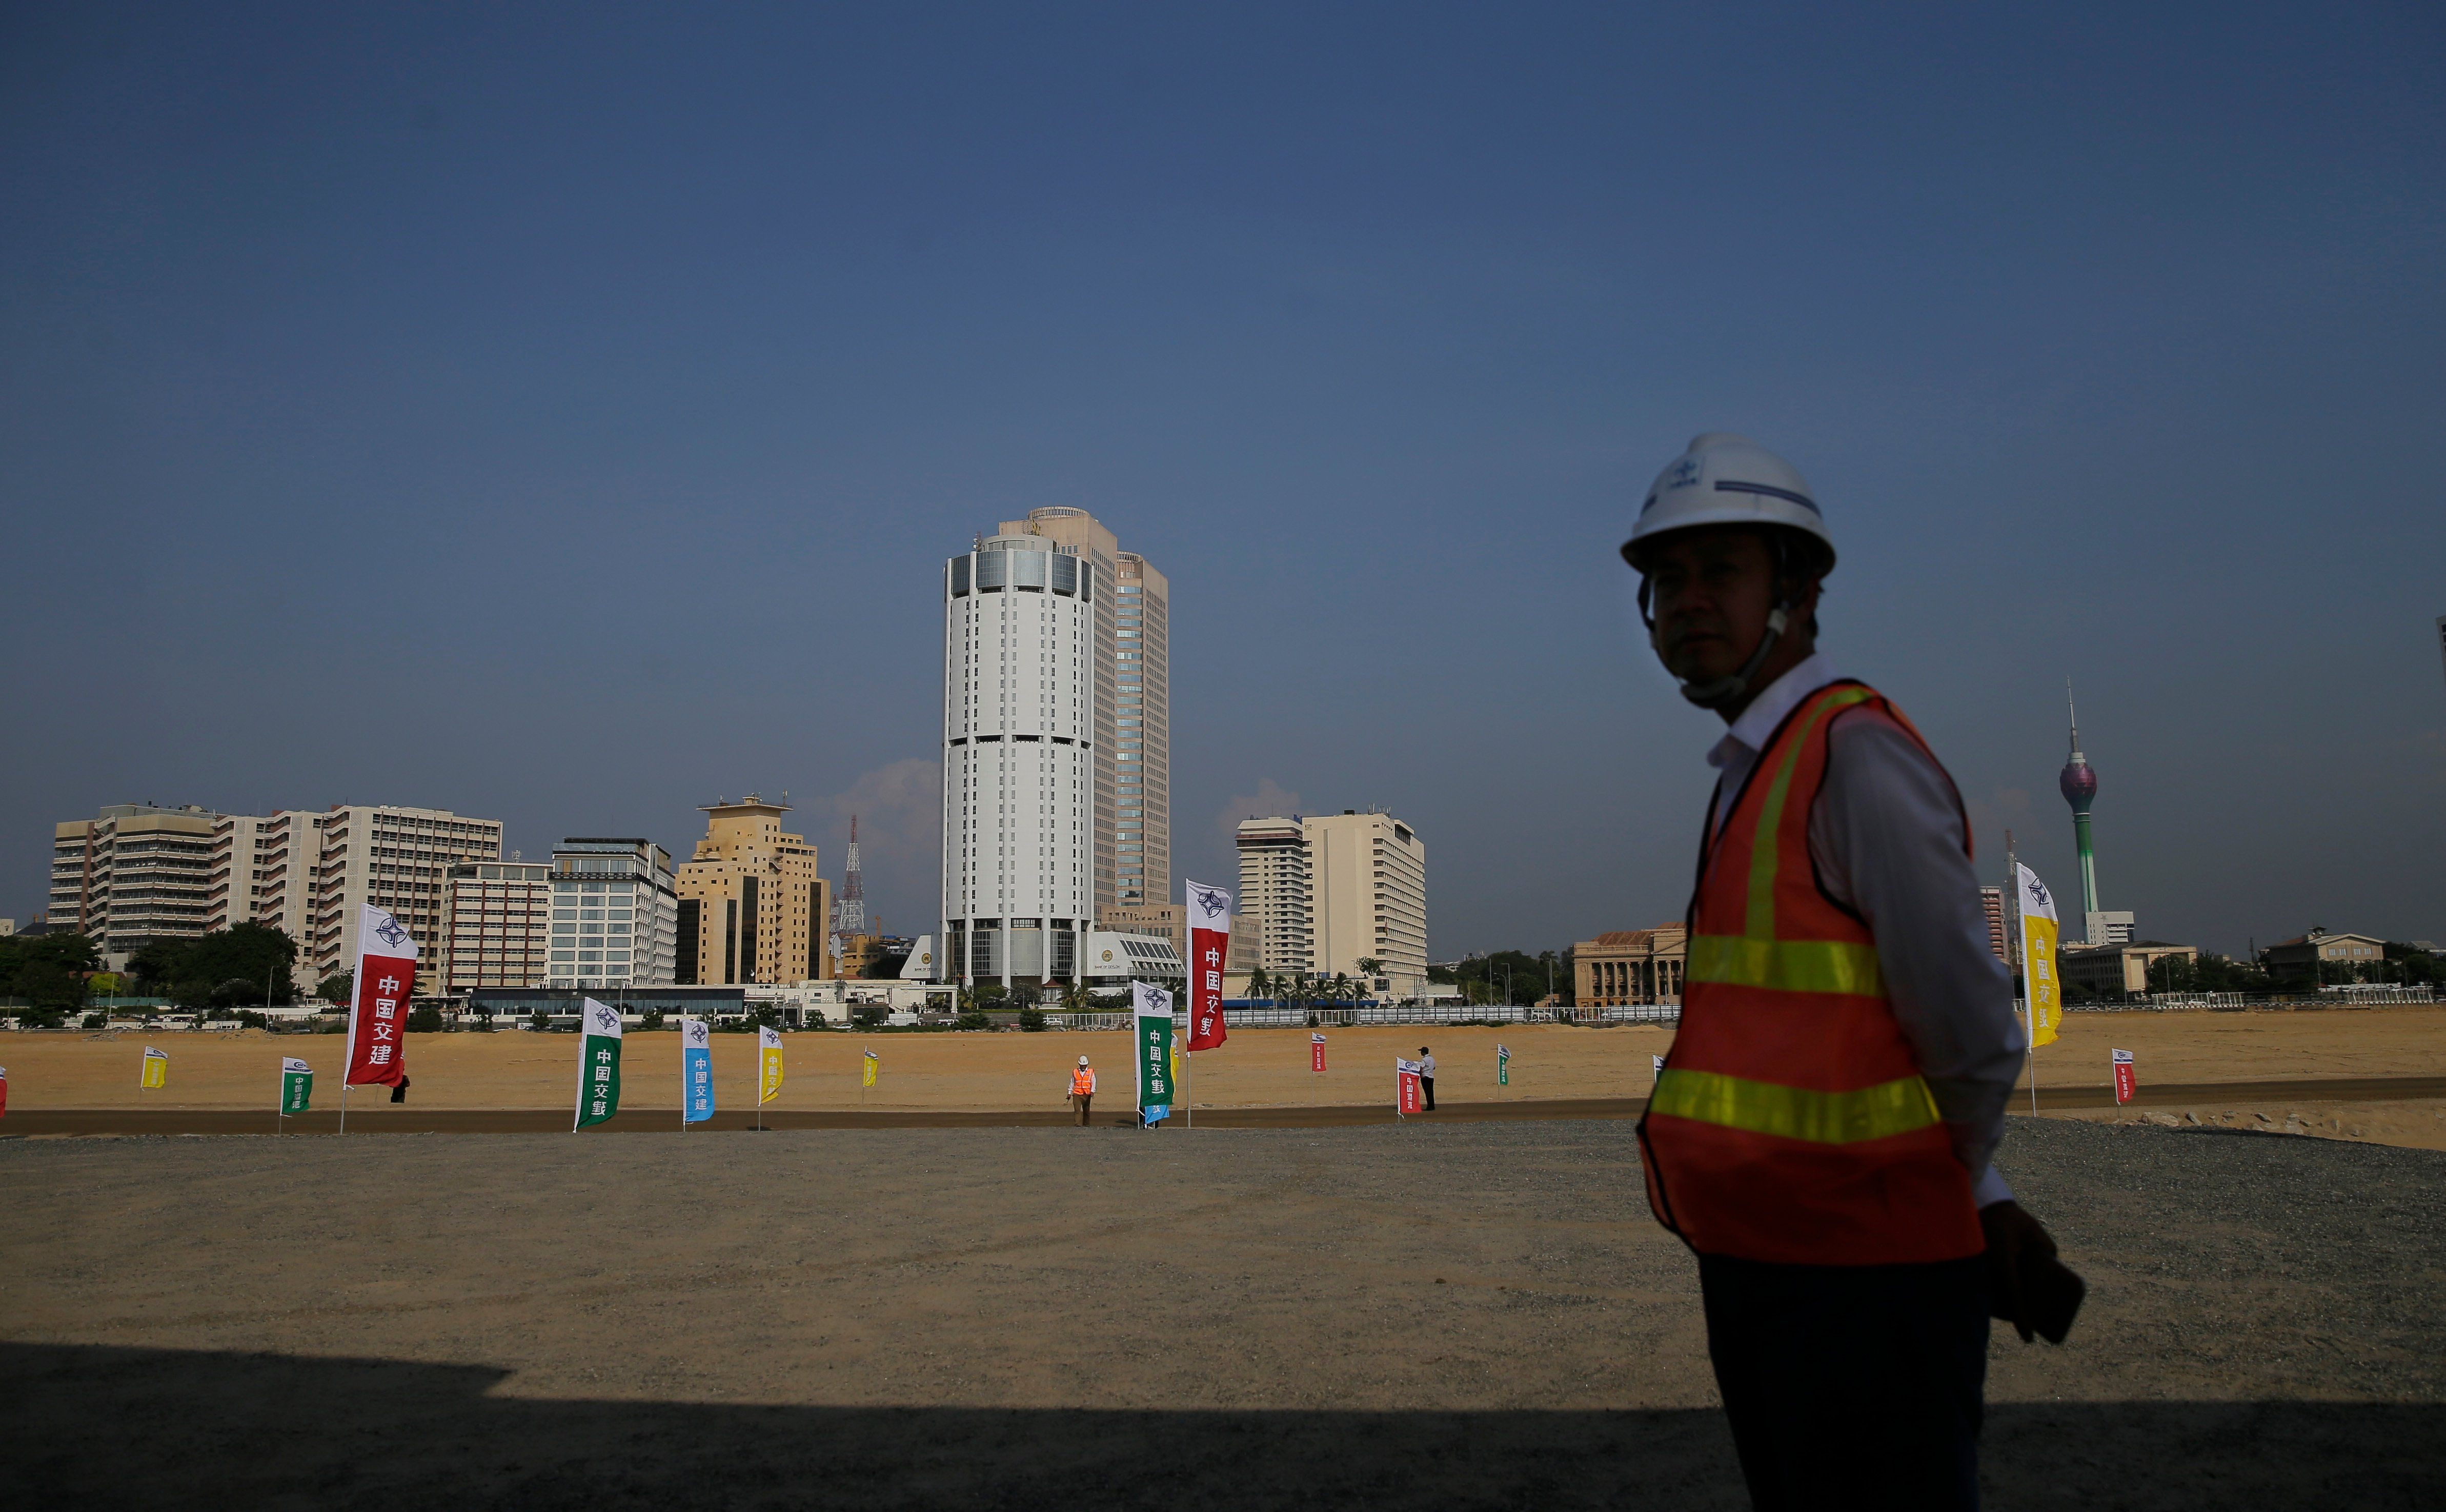 FILE - A Chinese construction worker stands on land that was reclaimed from the Indian Ocean for the Colombo Port City project, part of China's One Belt One Road initiative, in Colombo, Sri Lanka, Jan. 2, 2018.